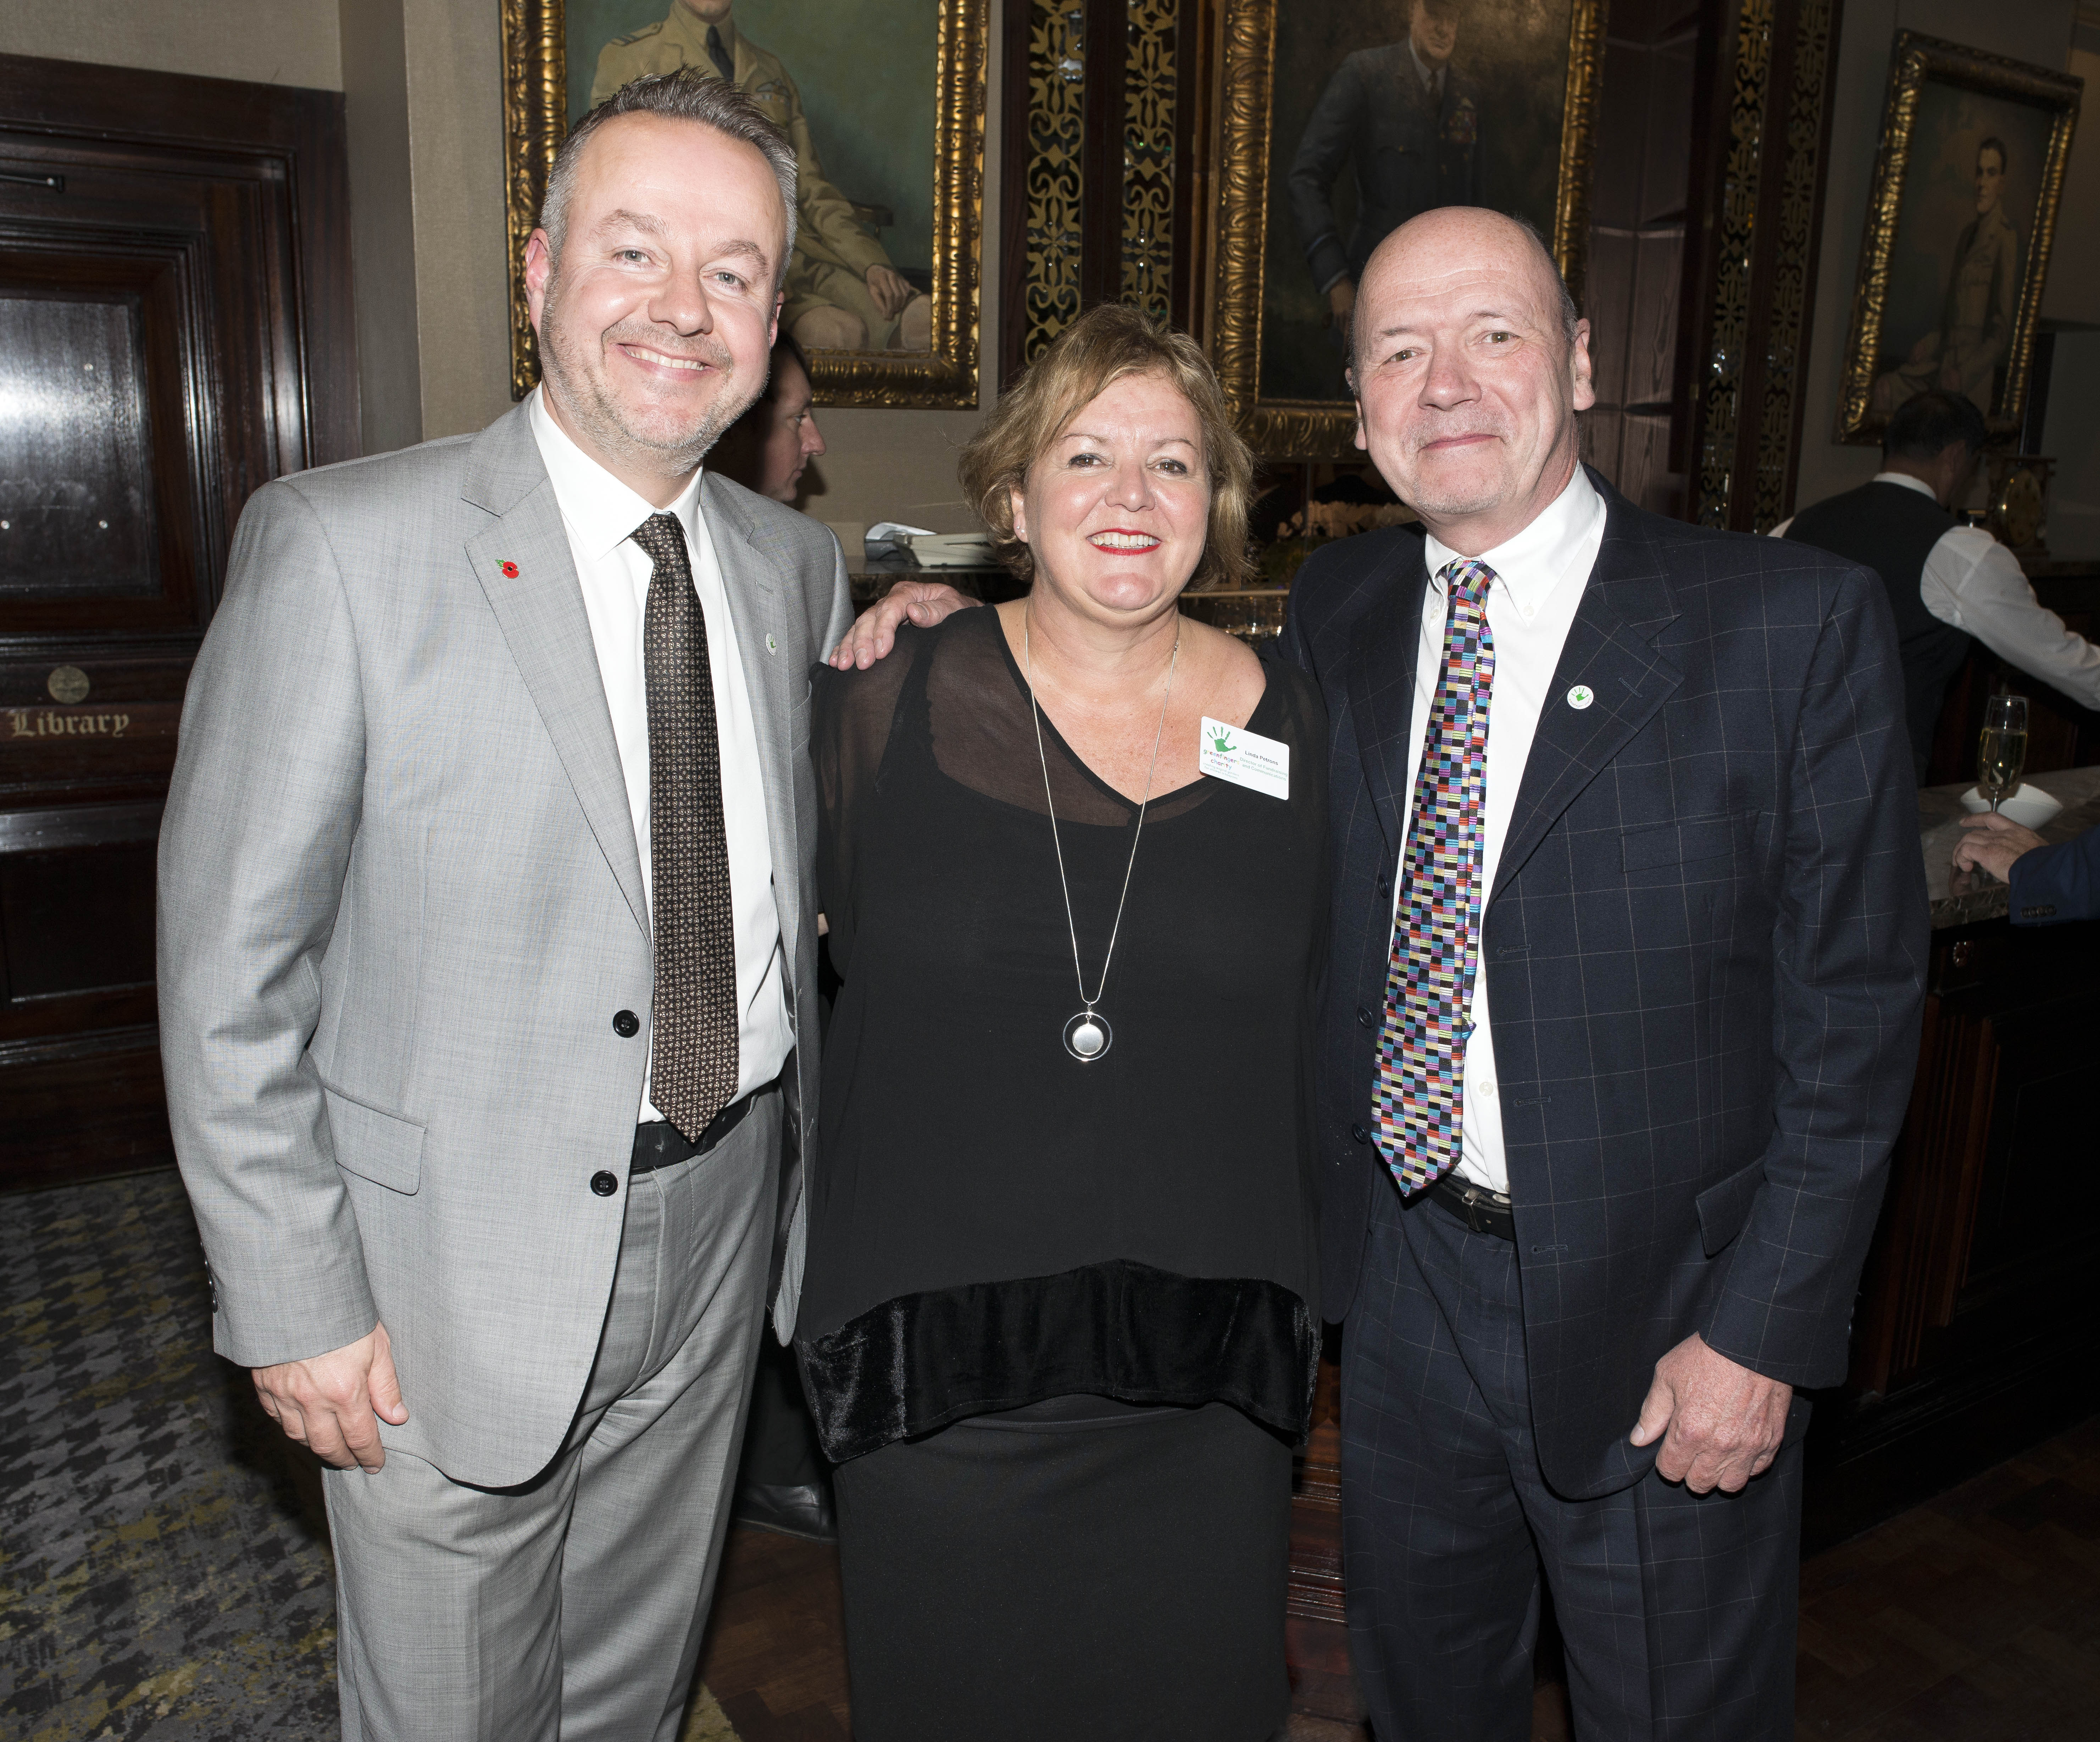 Above: GBCC's Chris Wilcox (right) with colleague Michael McGunnigle and Linda Petrons of Greenfingers, one of the charities with which the publisher works.